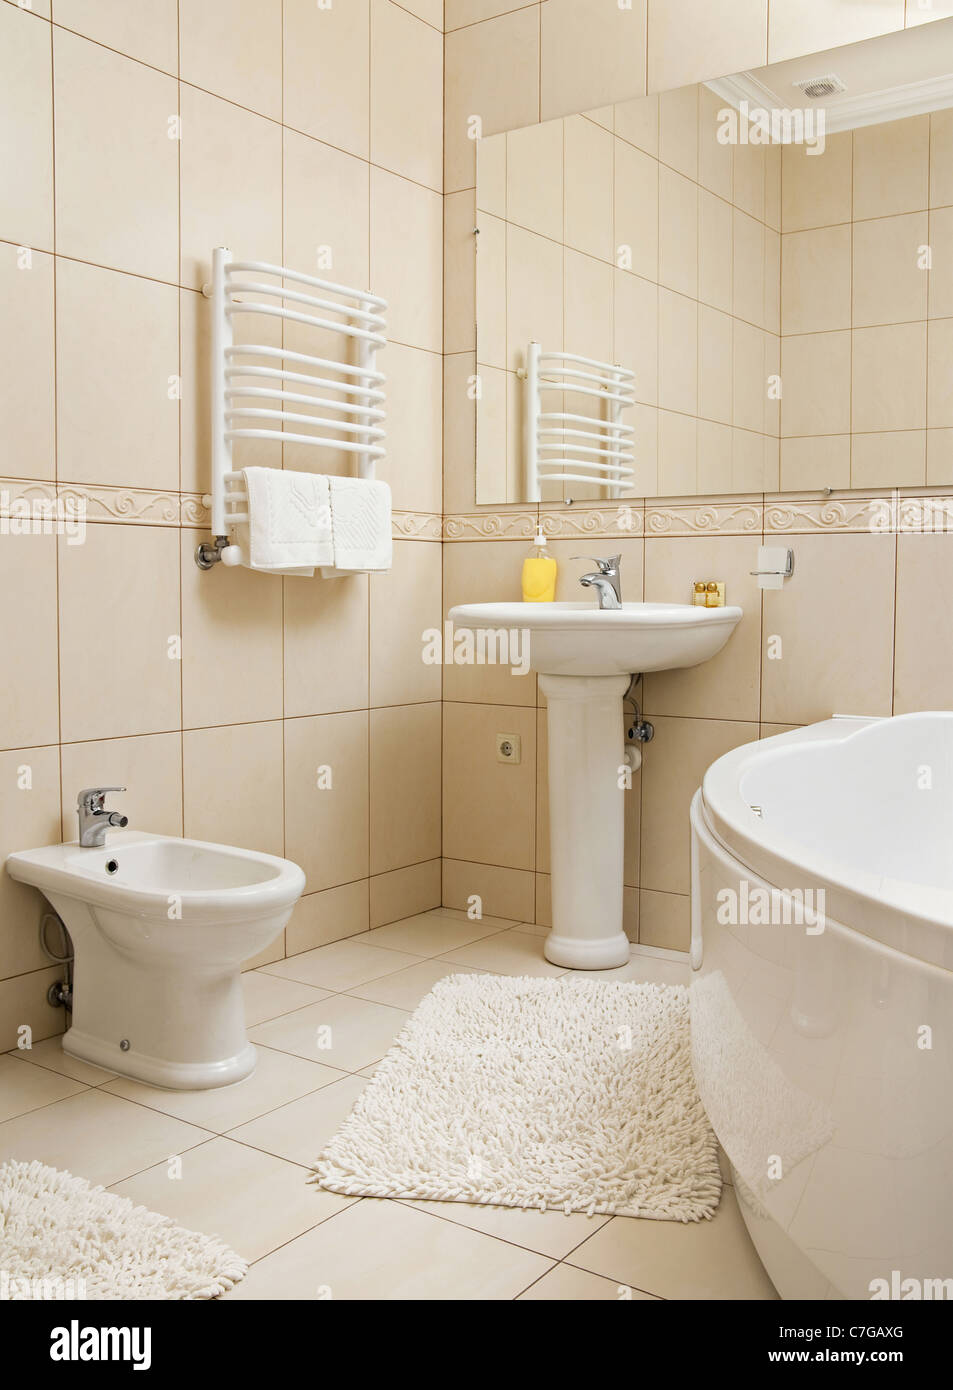 Detail white interior bathroom with accessories - Stock Image